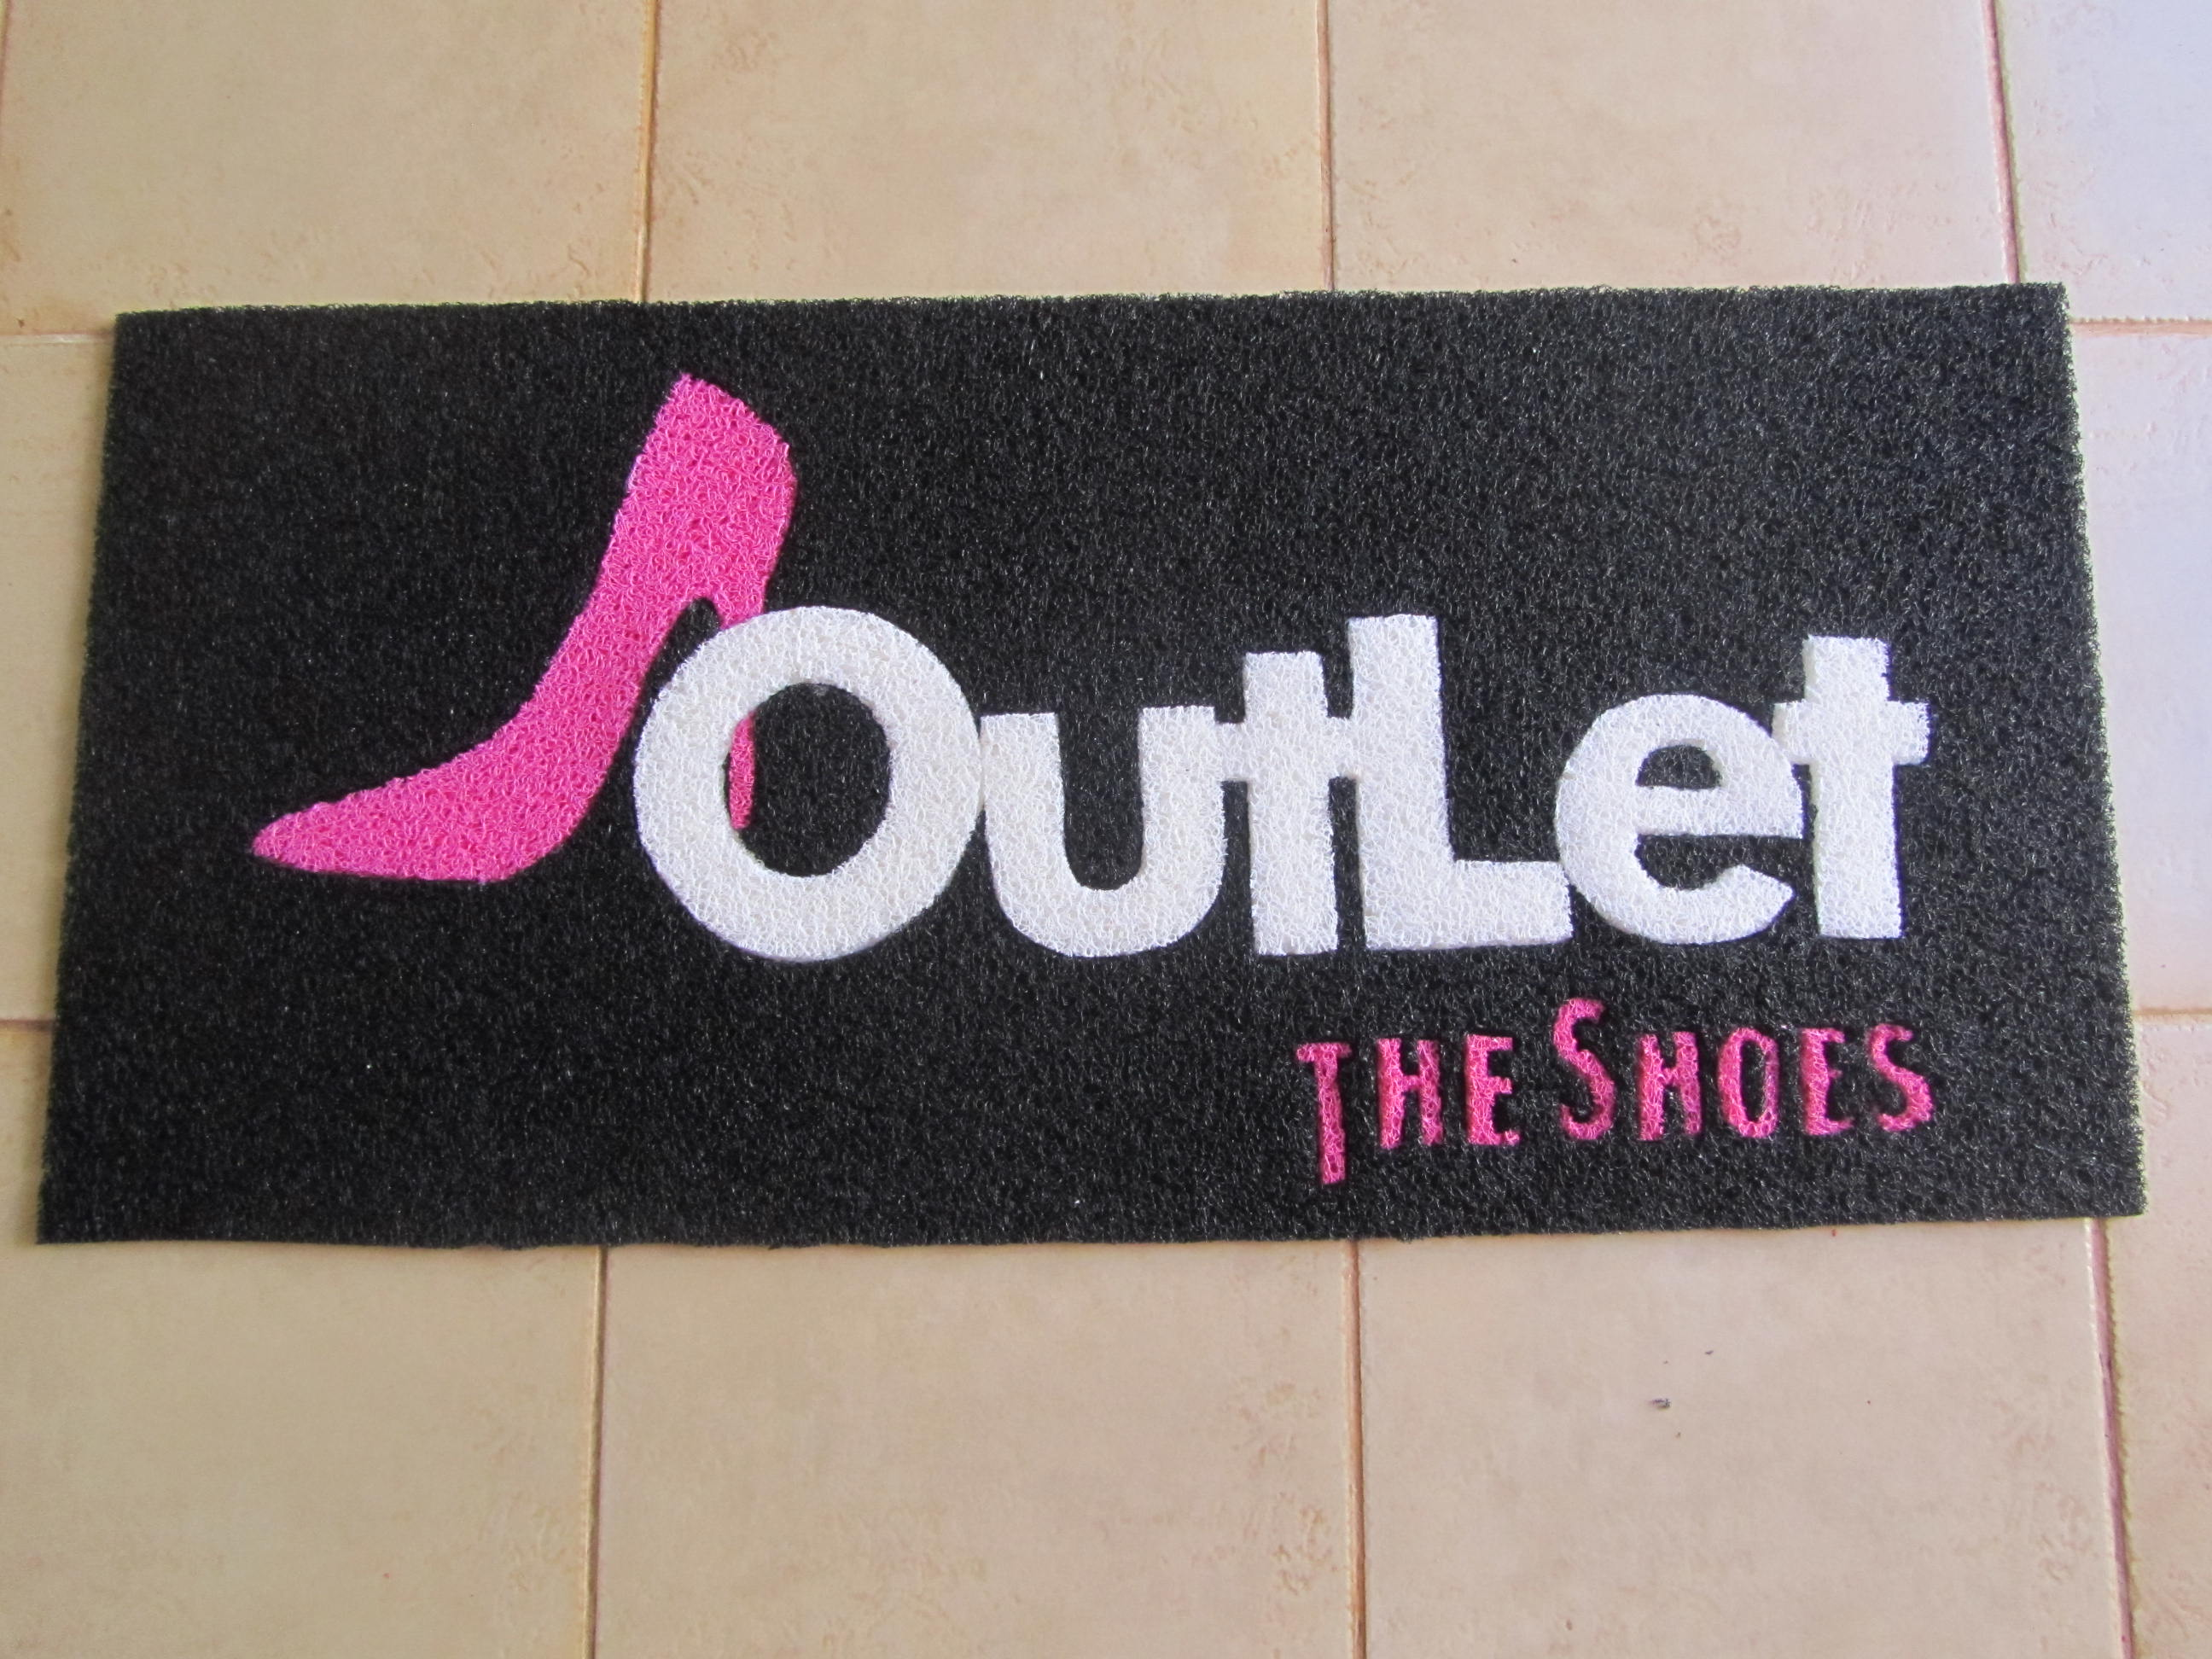 Outlet The Shoes.